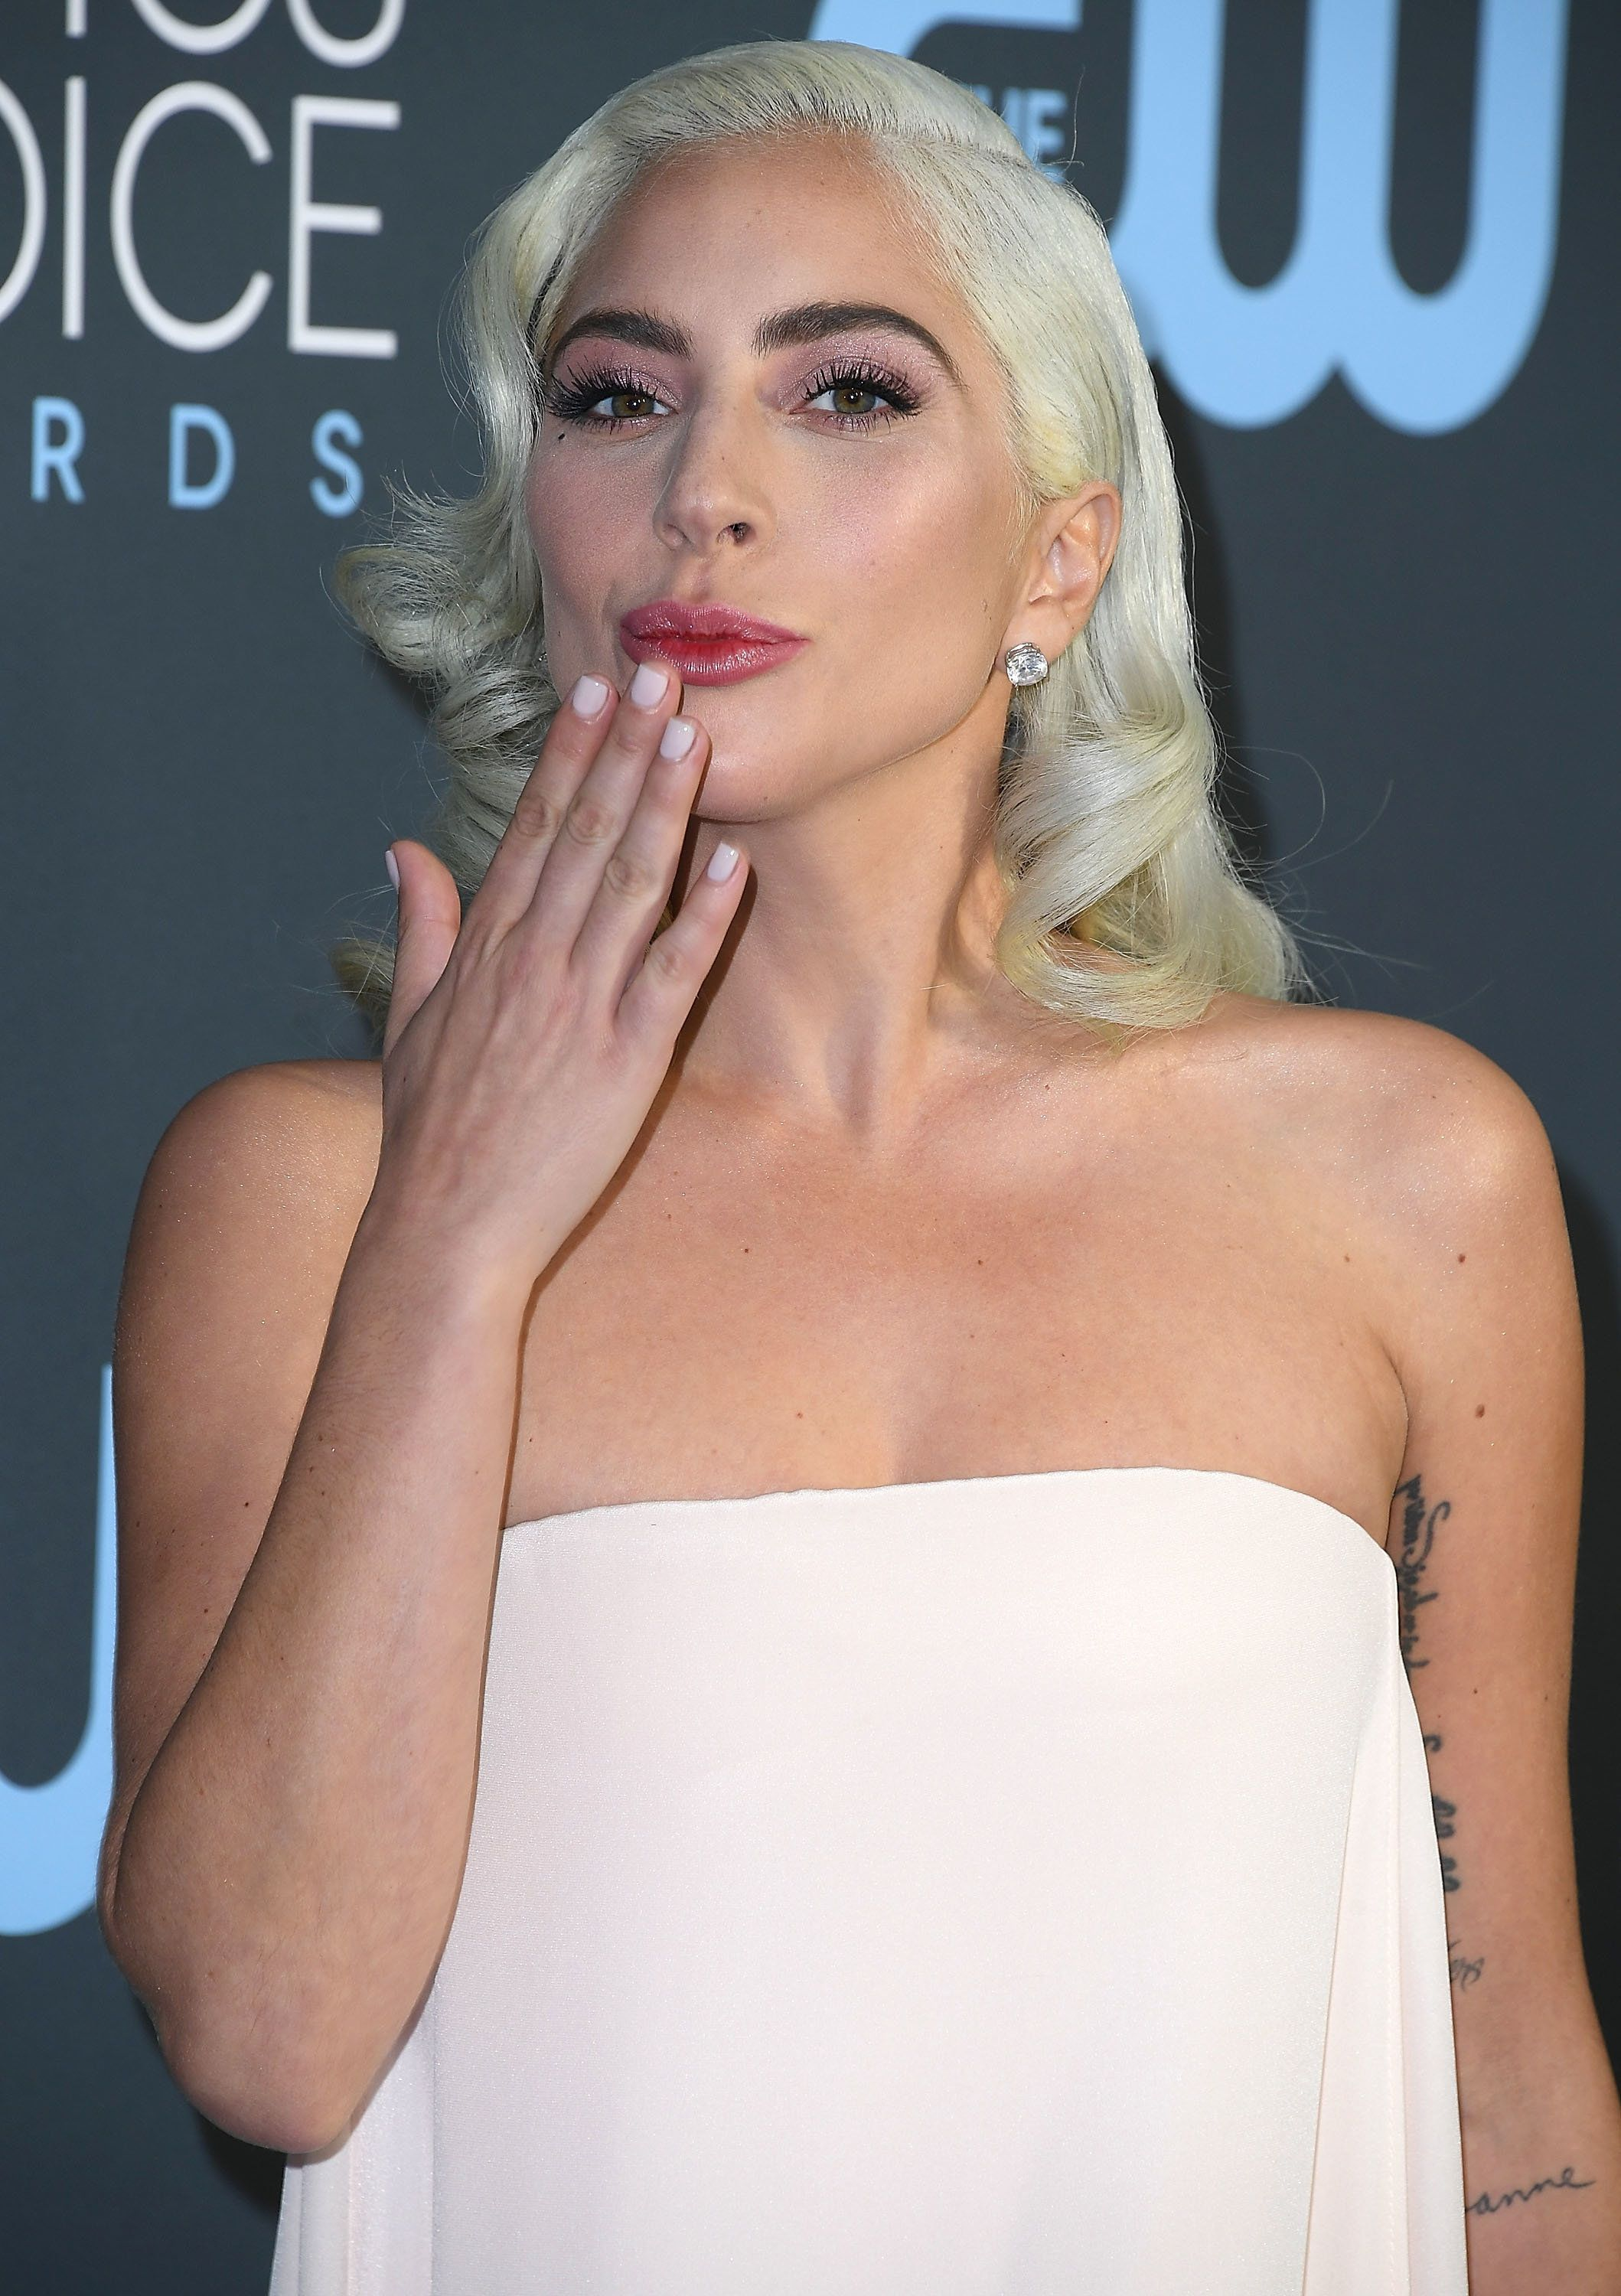 SANTA MONICA, CA - JANUARY 13:  Lady Gaga arrives at the The 24th Annual Critics' Choice Awards  attends The 24th Annual Critics' Choice Awards at Barker Hangar on January 13, 2019 in Santa Monica, California.  (Photo by Steve Granitz/WireImage)